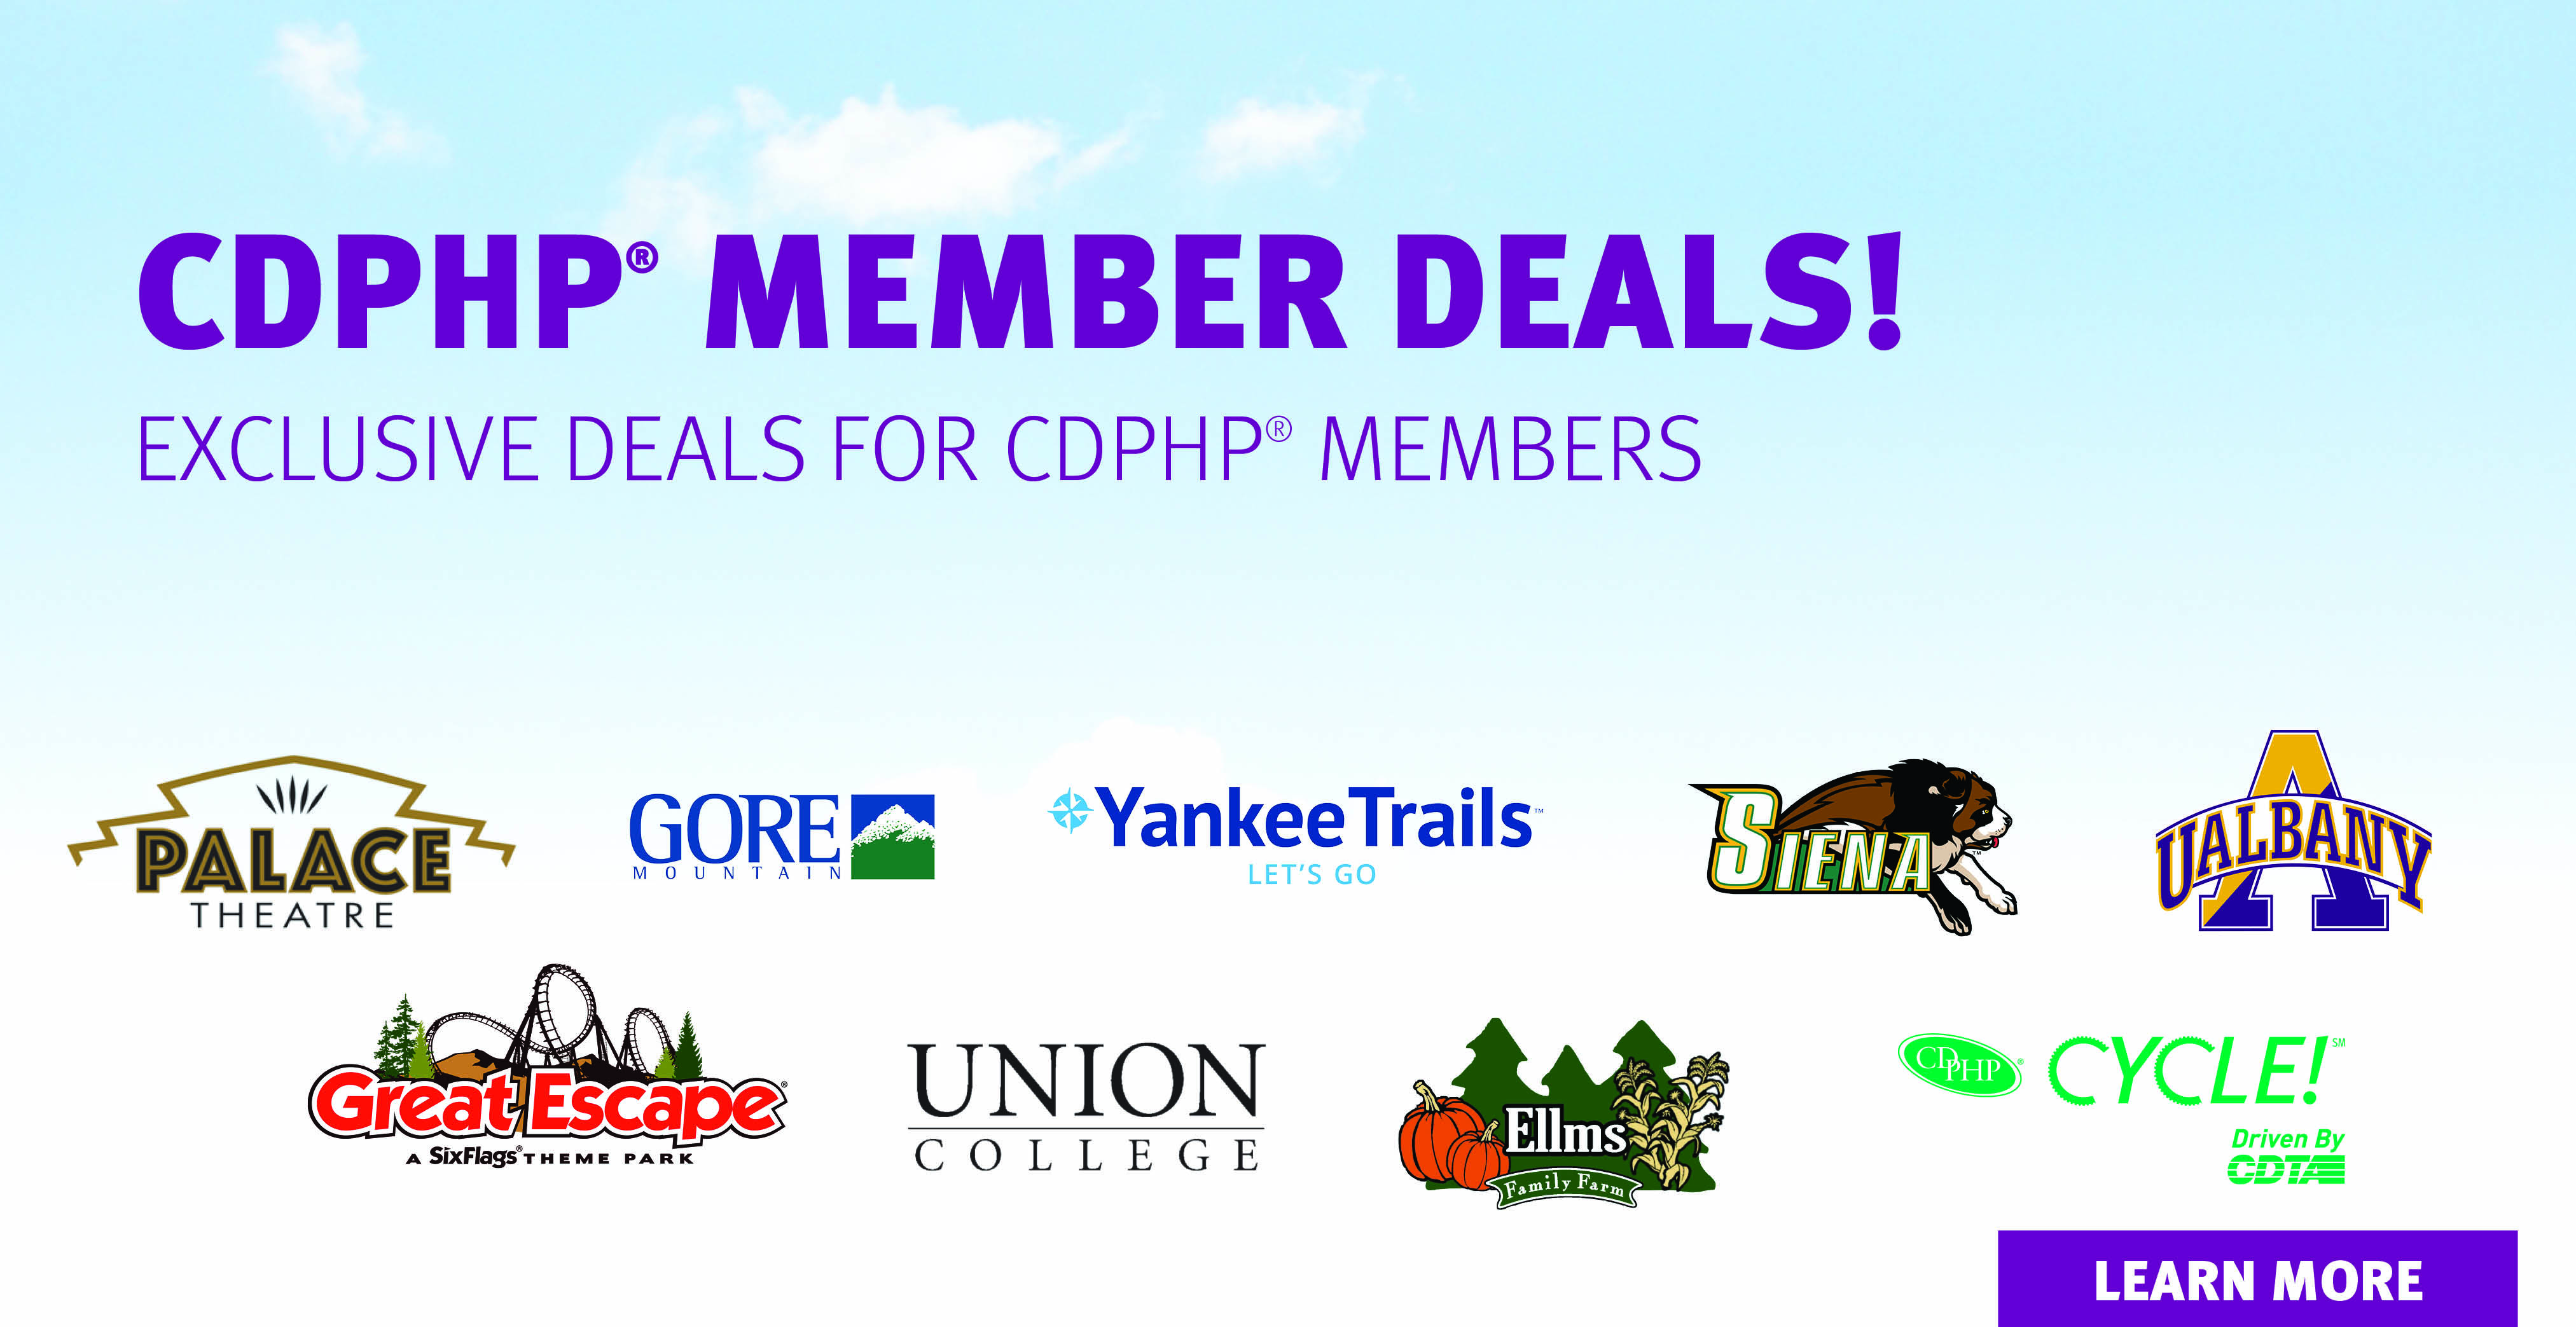 exclusive deals for CDPHP members image